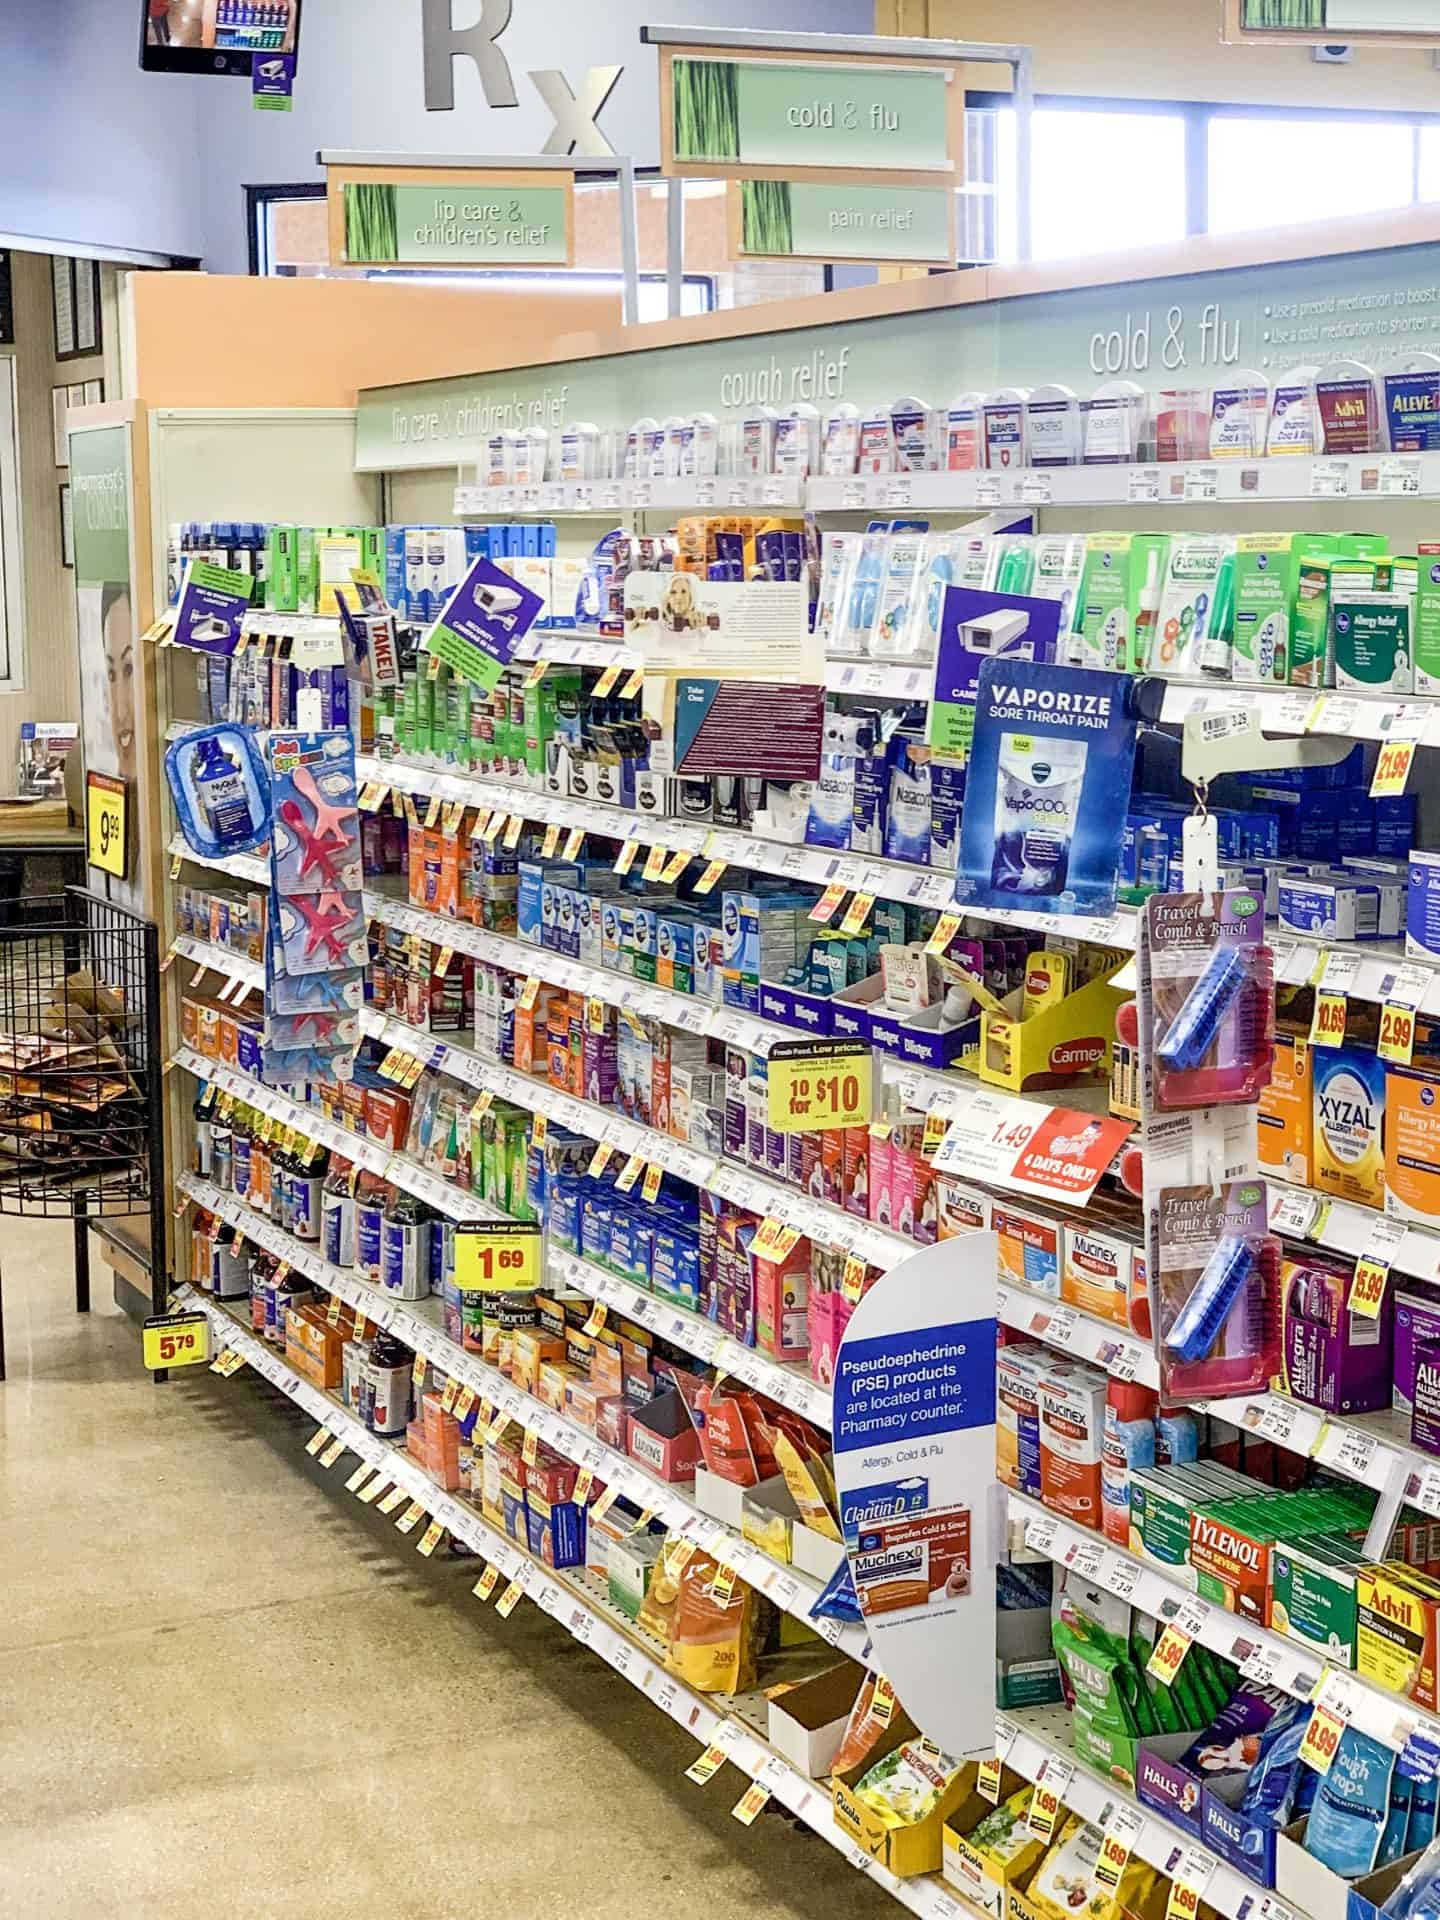 Medicine aisle in Kroger, Illinois is easily accessible and located right at the front of the store so you don't have to go far for all of your sick day essentials.